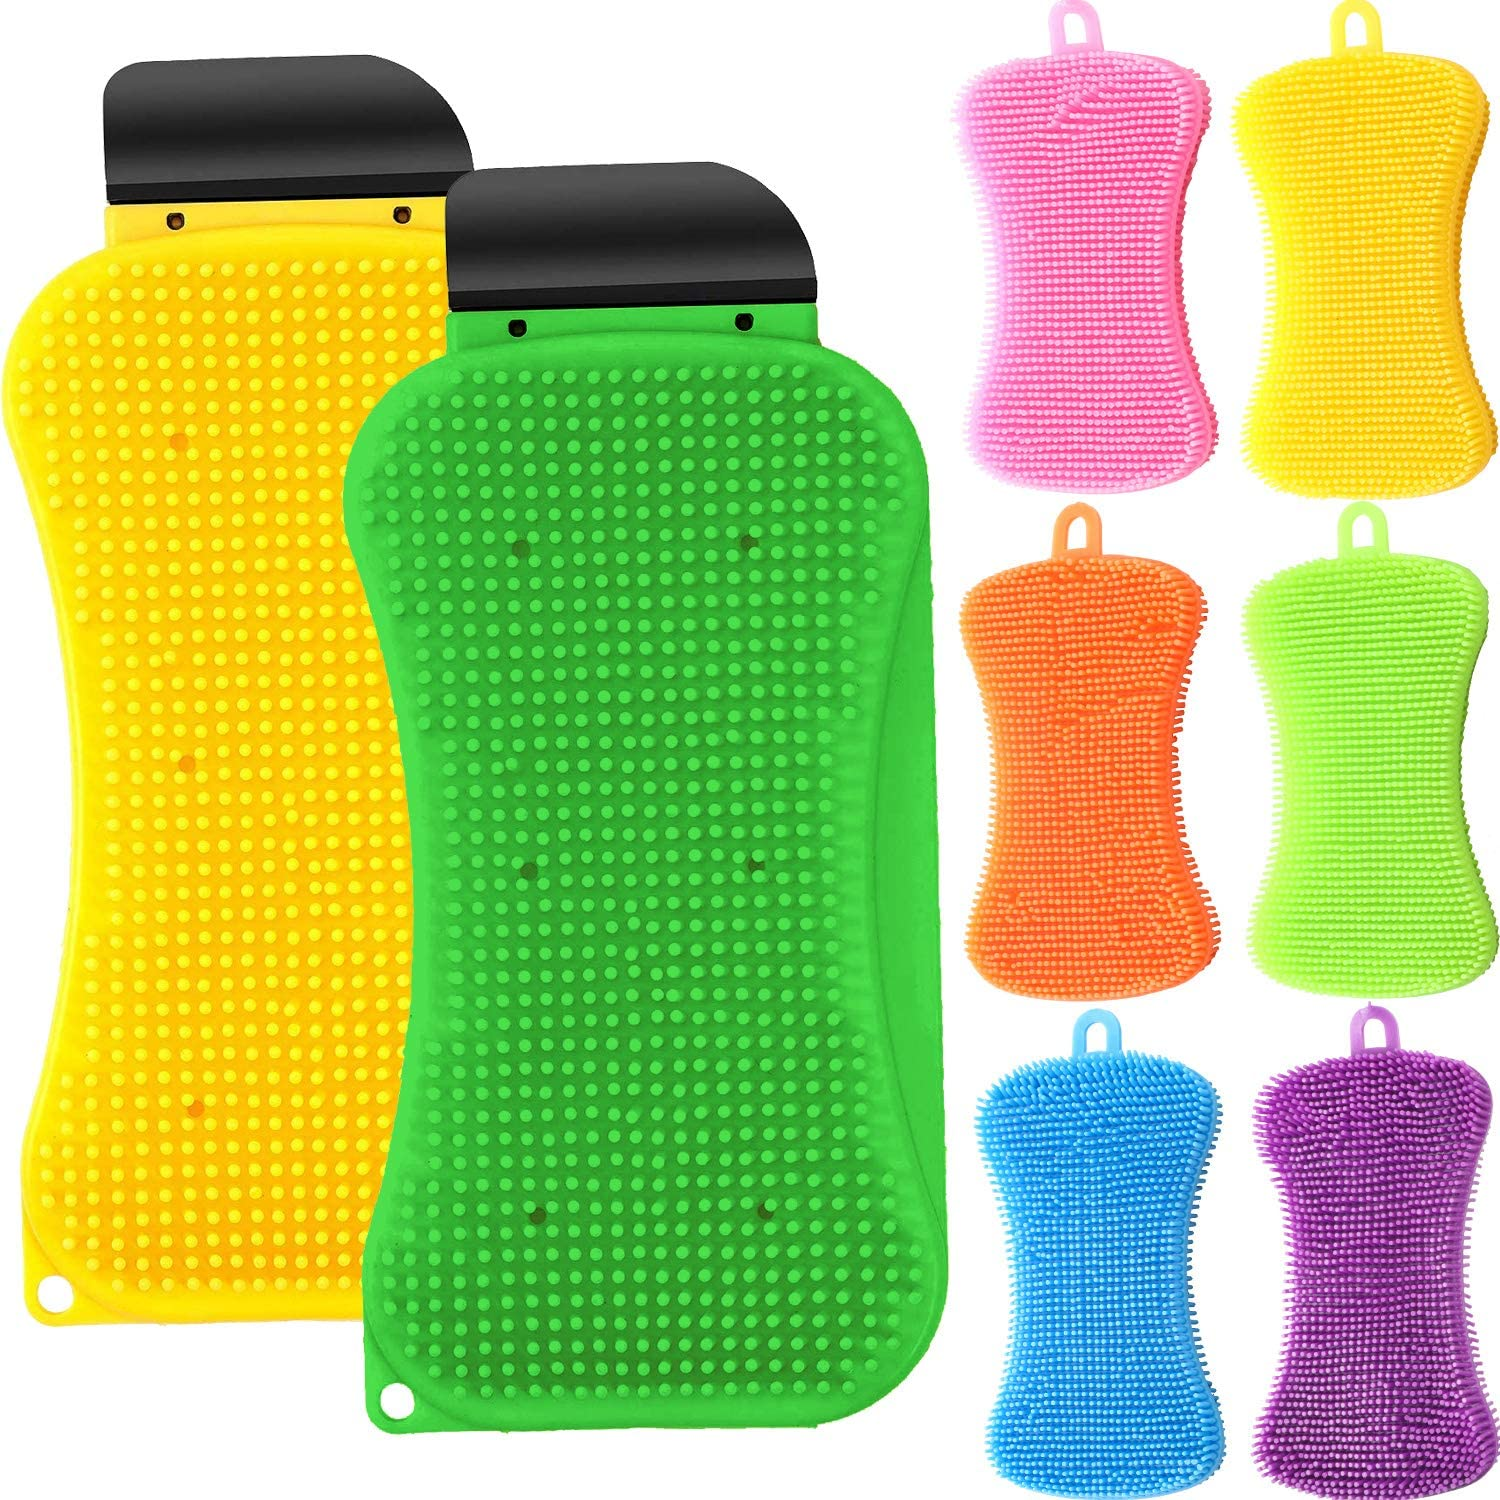 8 Pieces 3-in-1 Kitchen Silicone Sponge Scrubber and Silicone Dish Washing Scrubber Multi-Functional Silicone Sponge Scraper Cleaning Brush for Kitchen Bathroom Cleaning Supplies